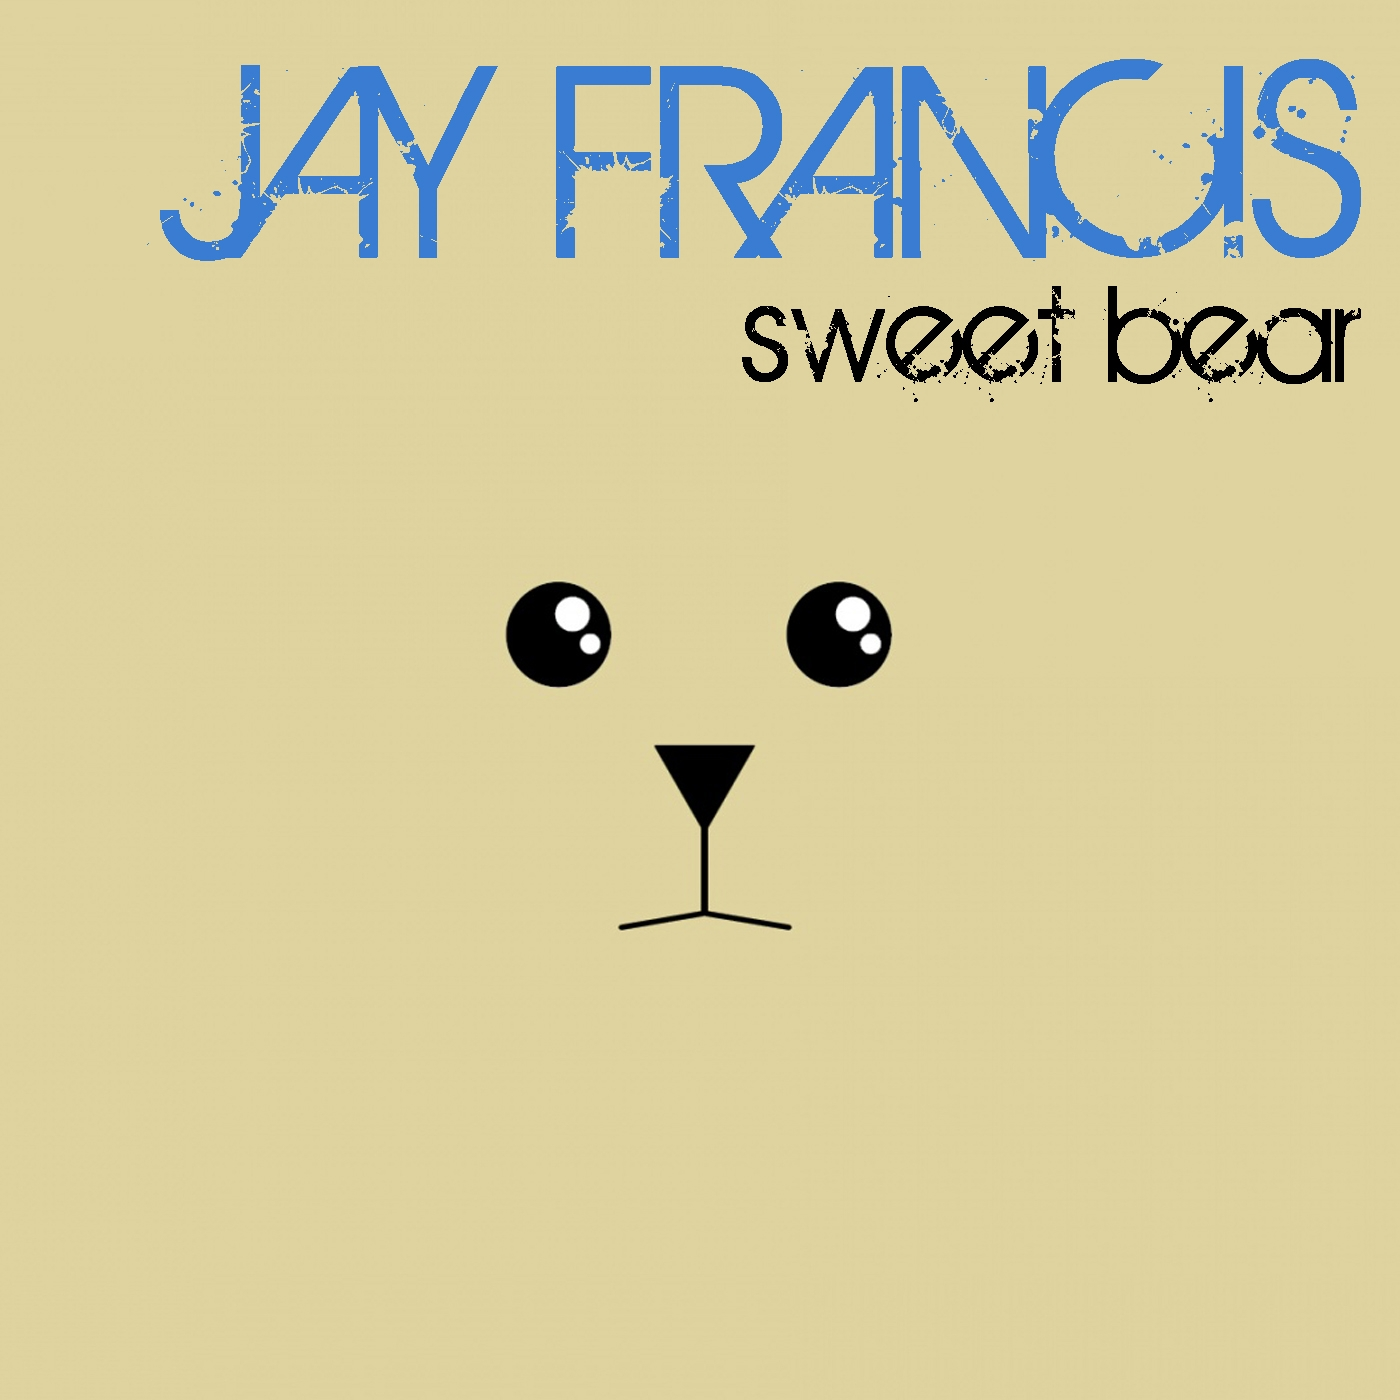 Jay Francis - The Sun (Original Mix)